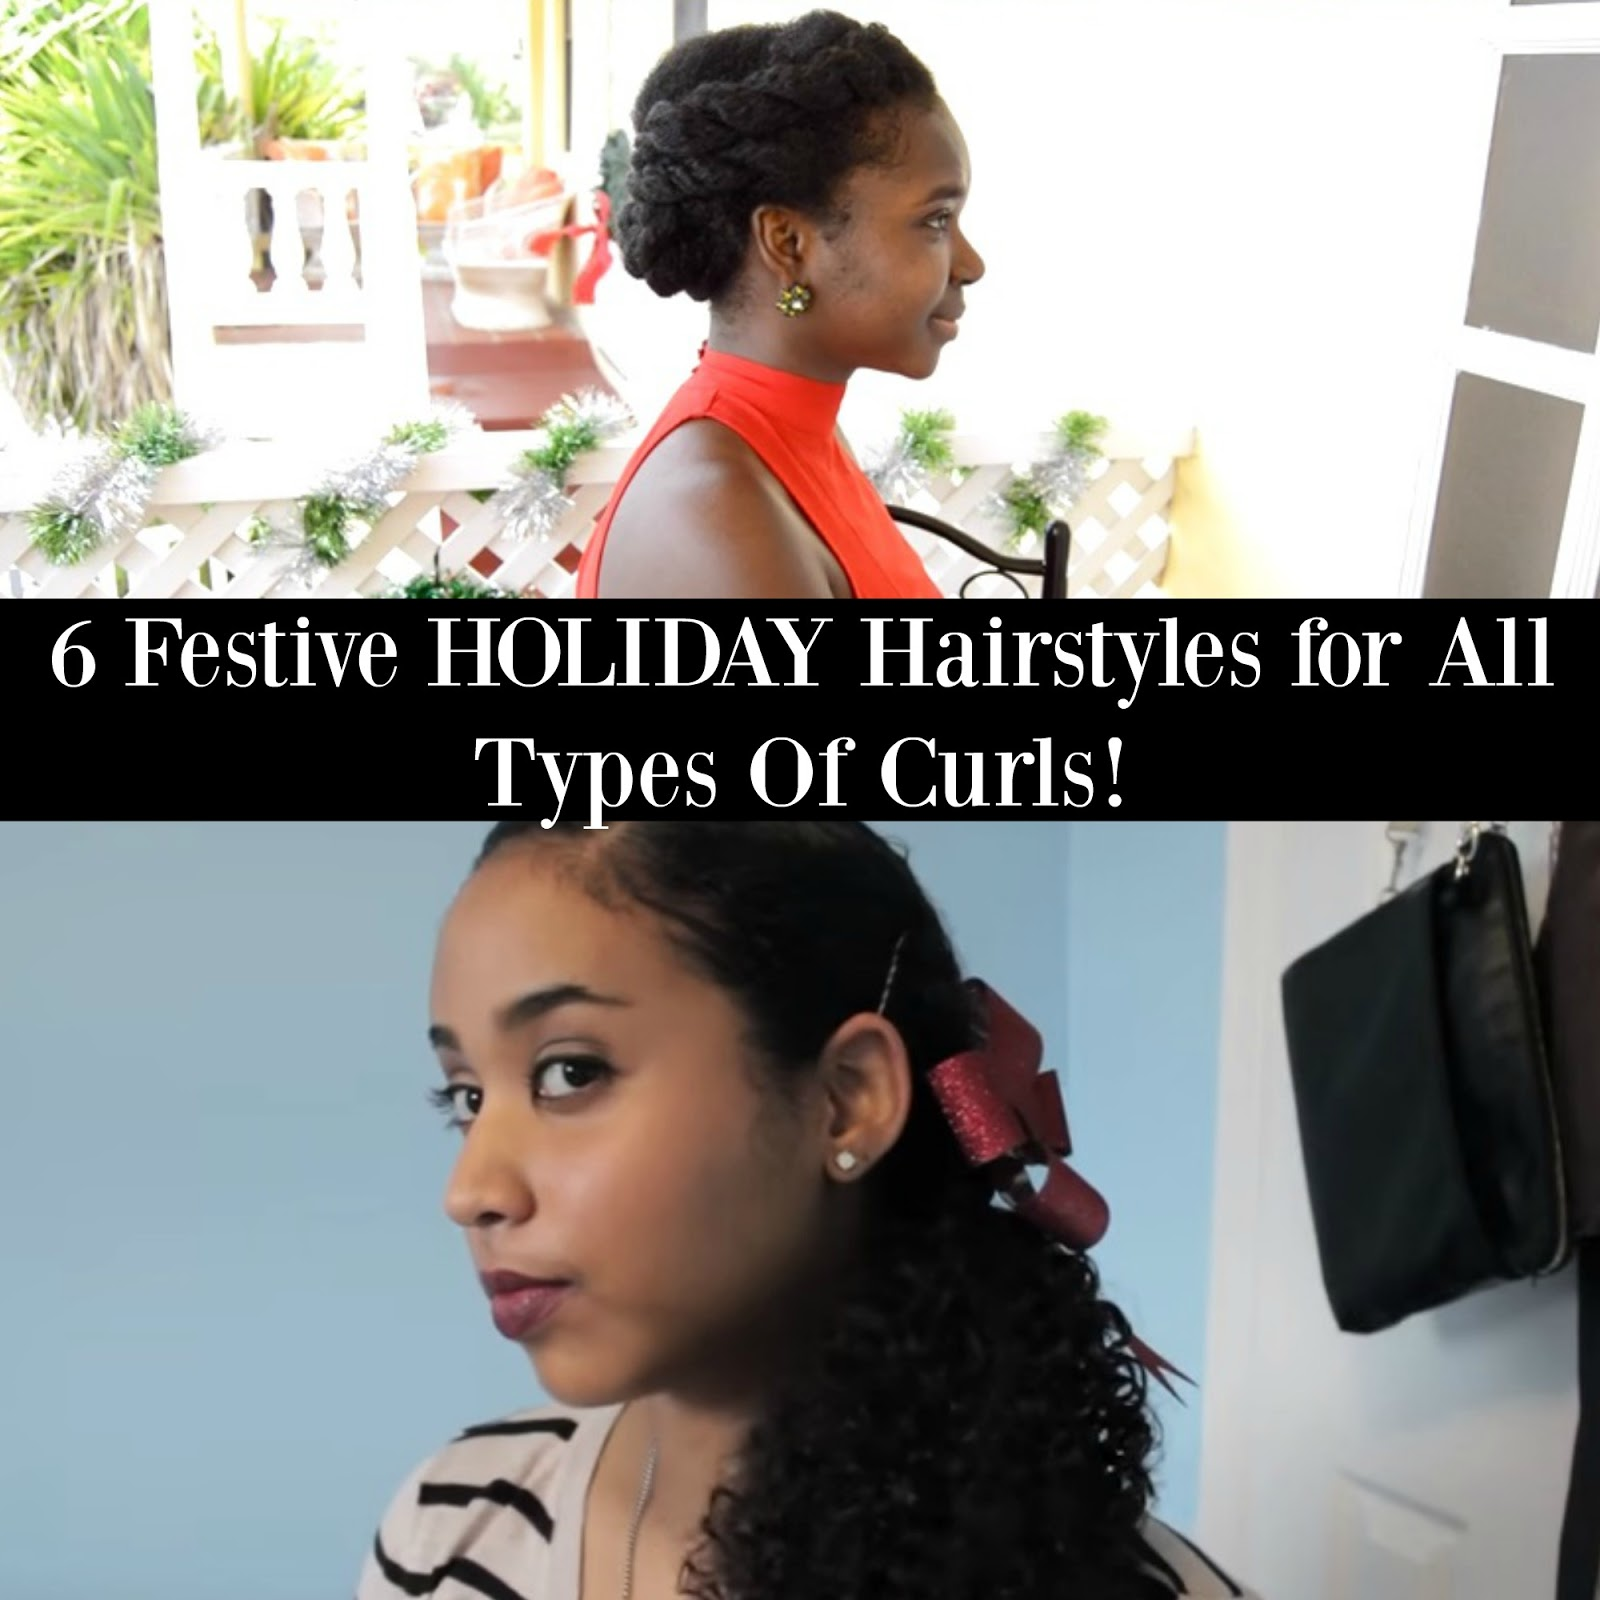 6 Festive HOLIDAY Hairstyles for All Types Of Curls!